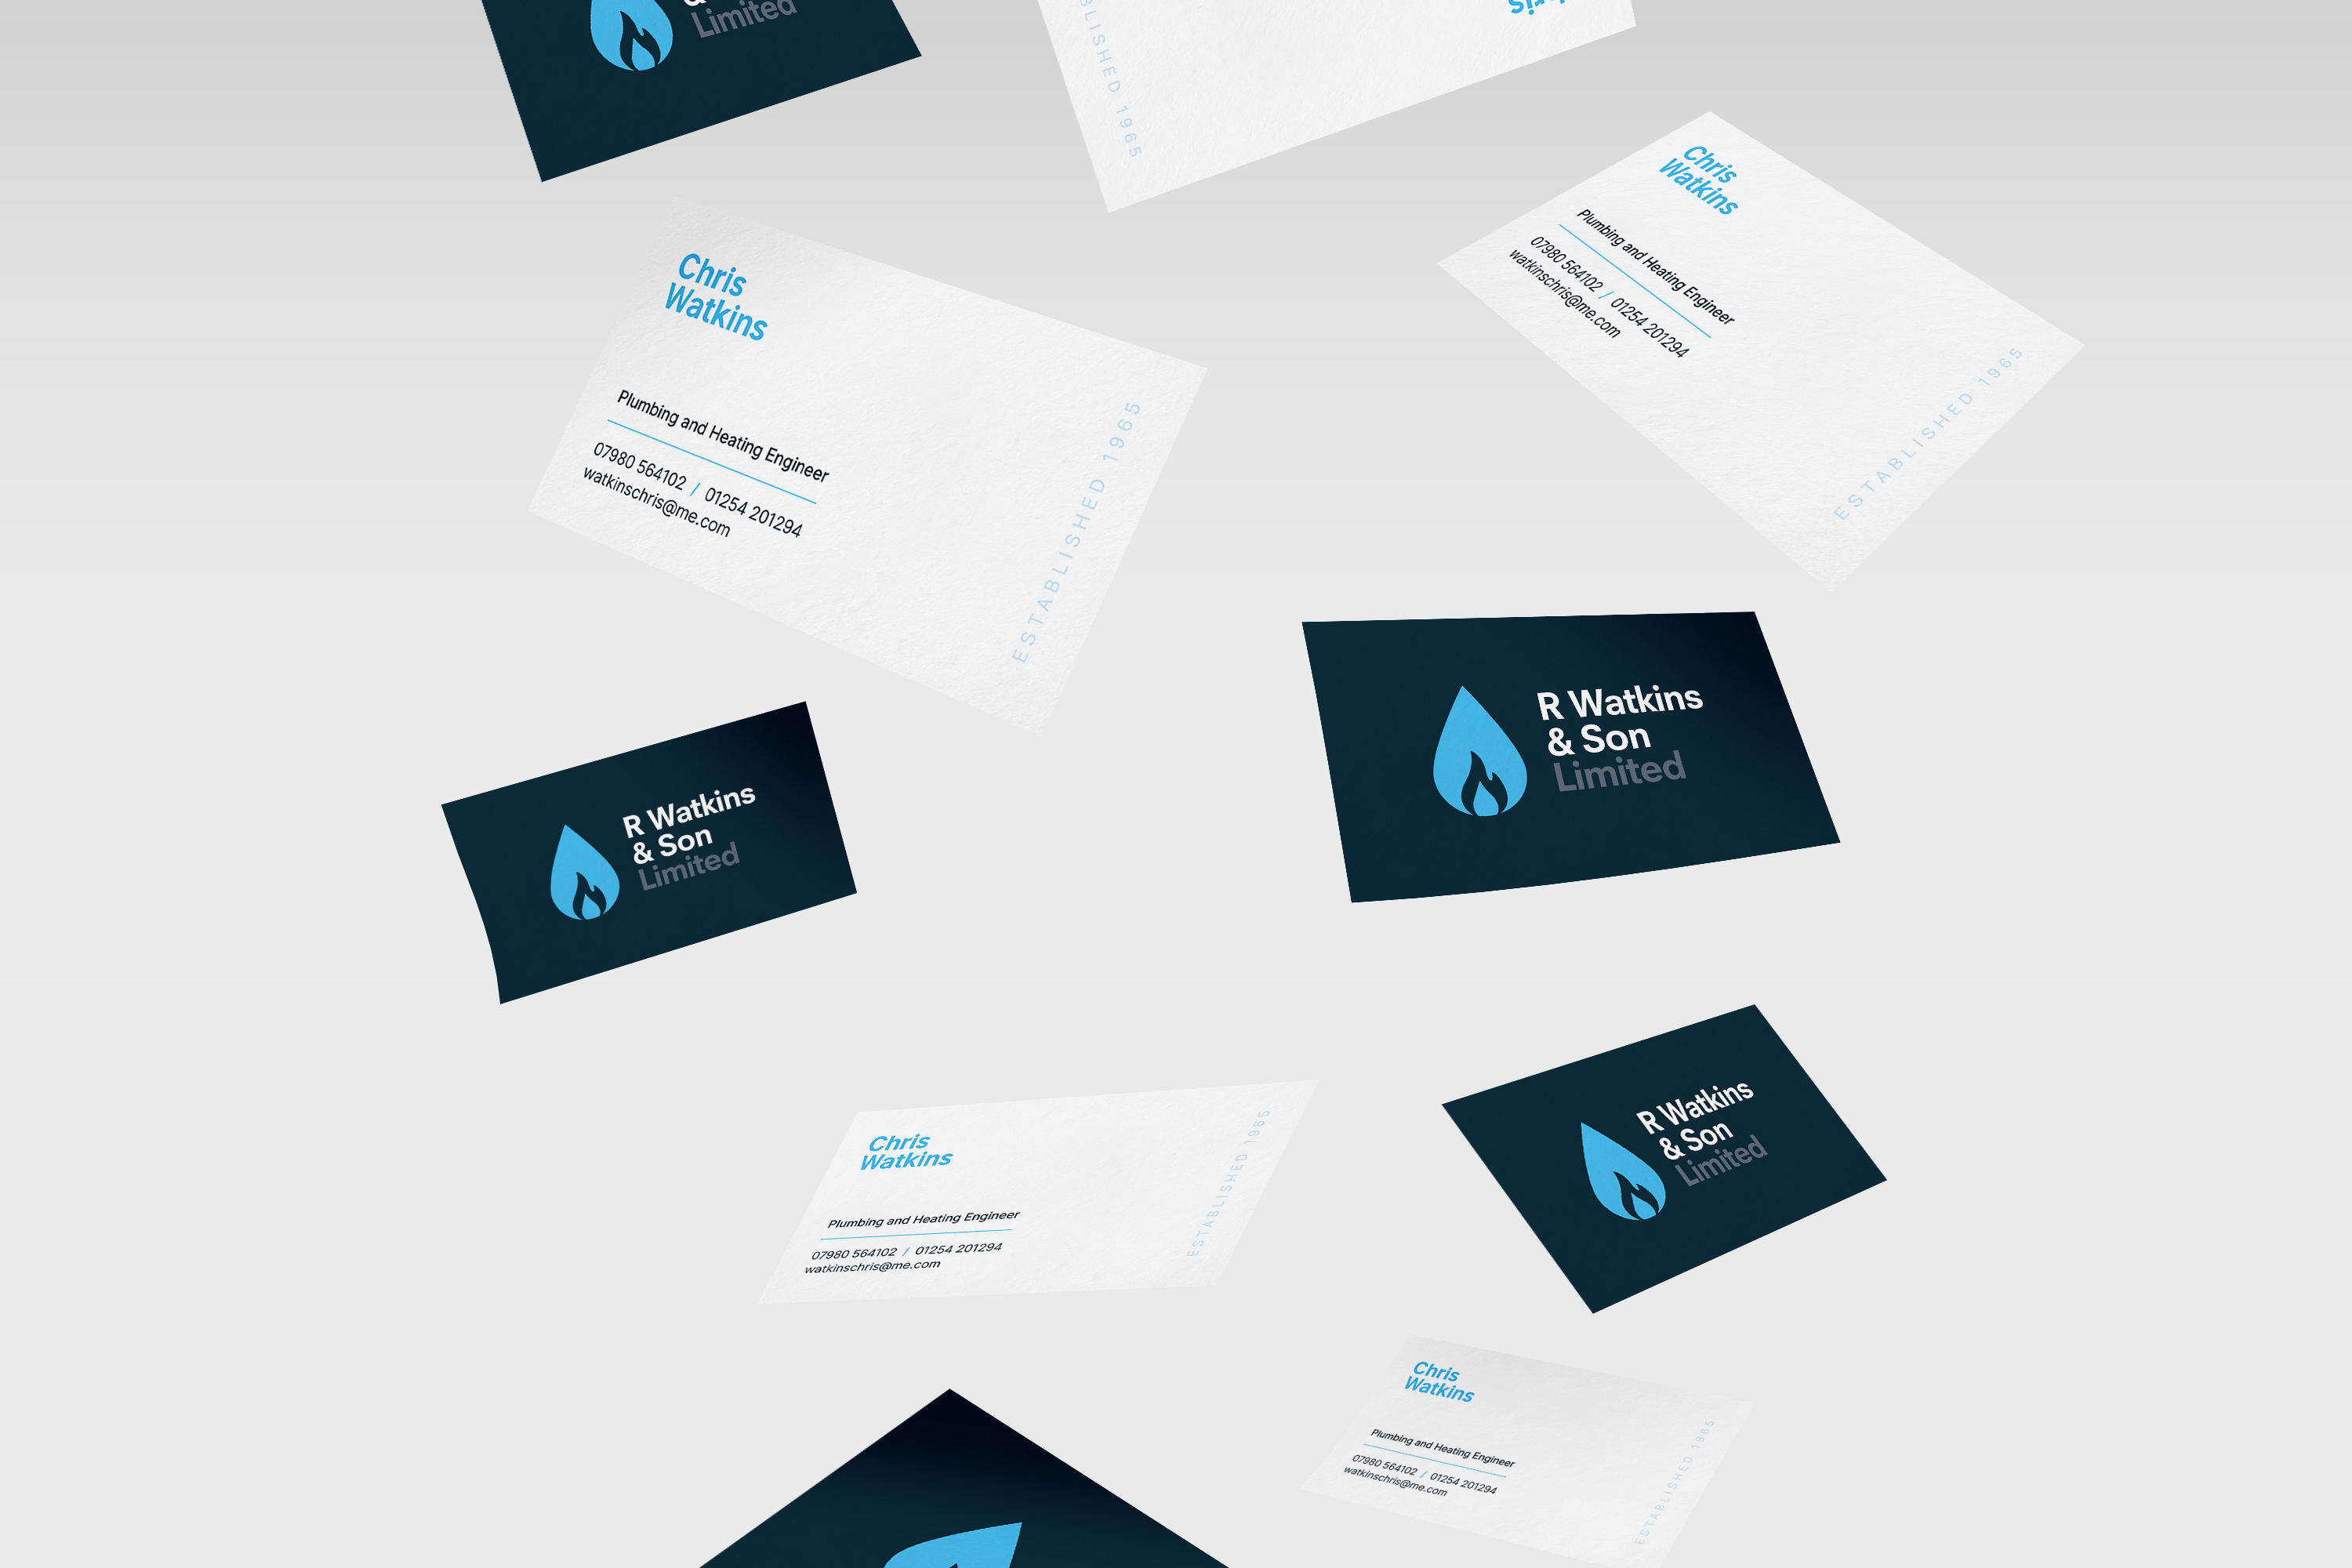 Business card design for established plumbing and heating business, R Watkins & Son Limited